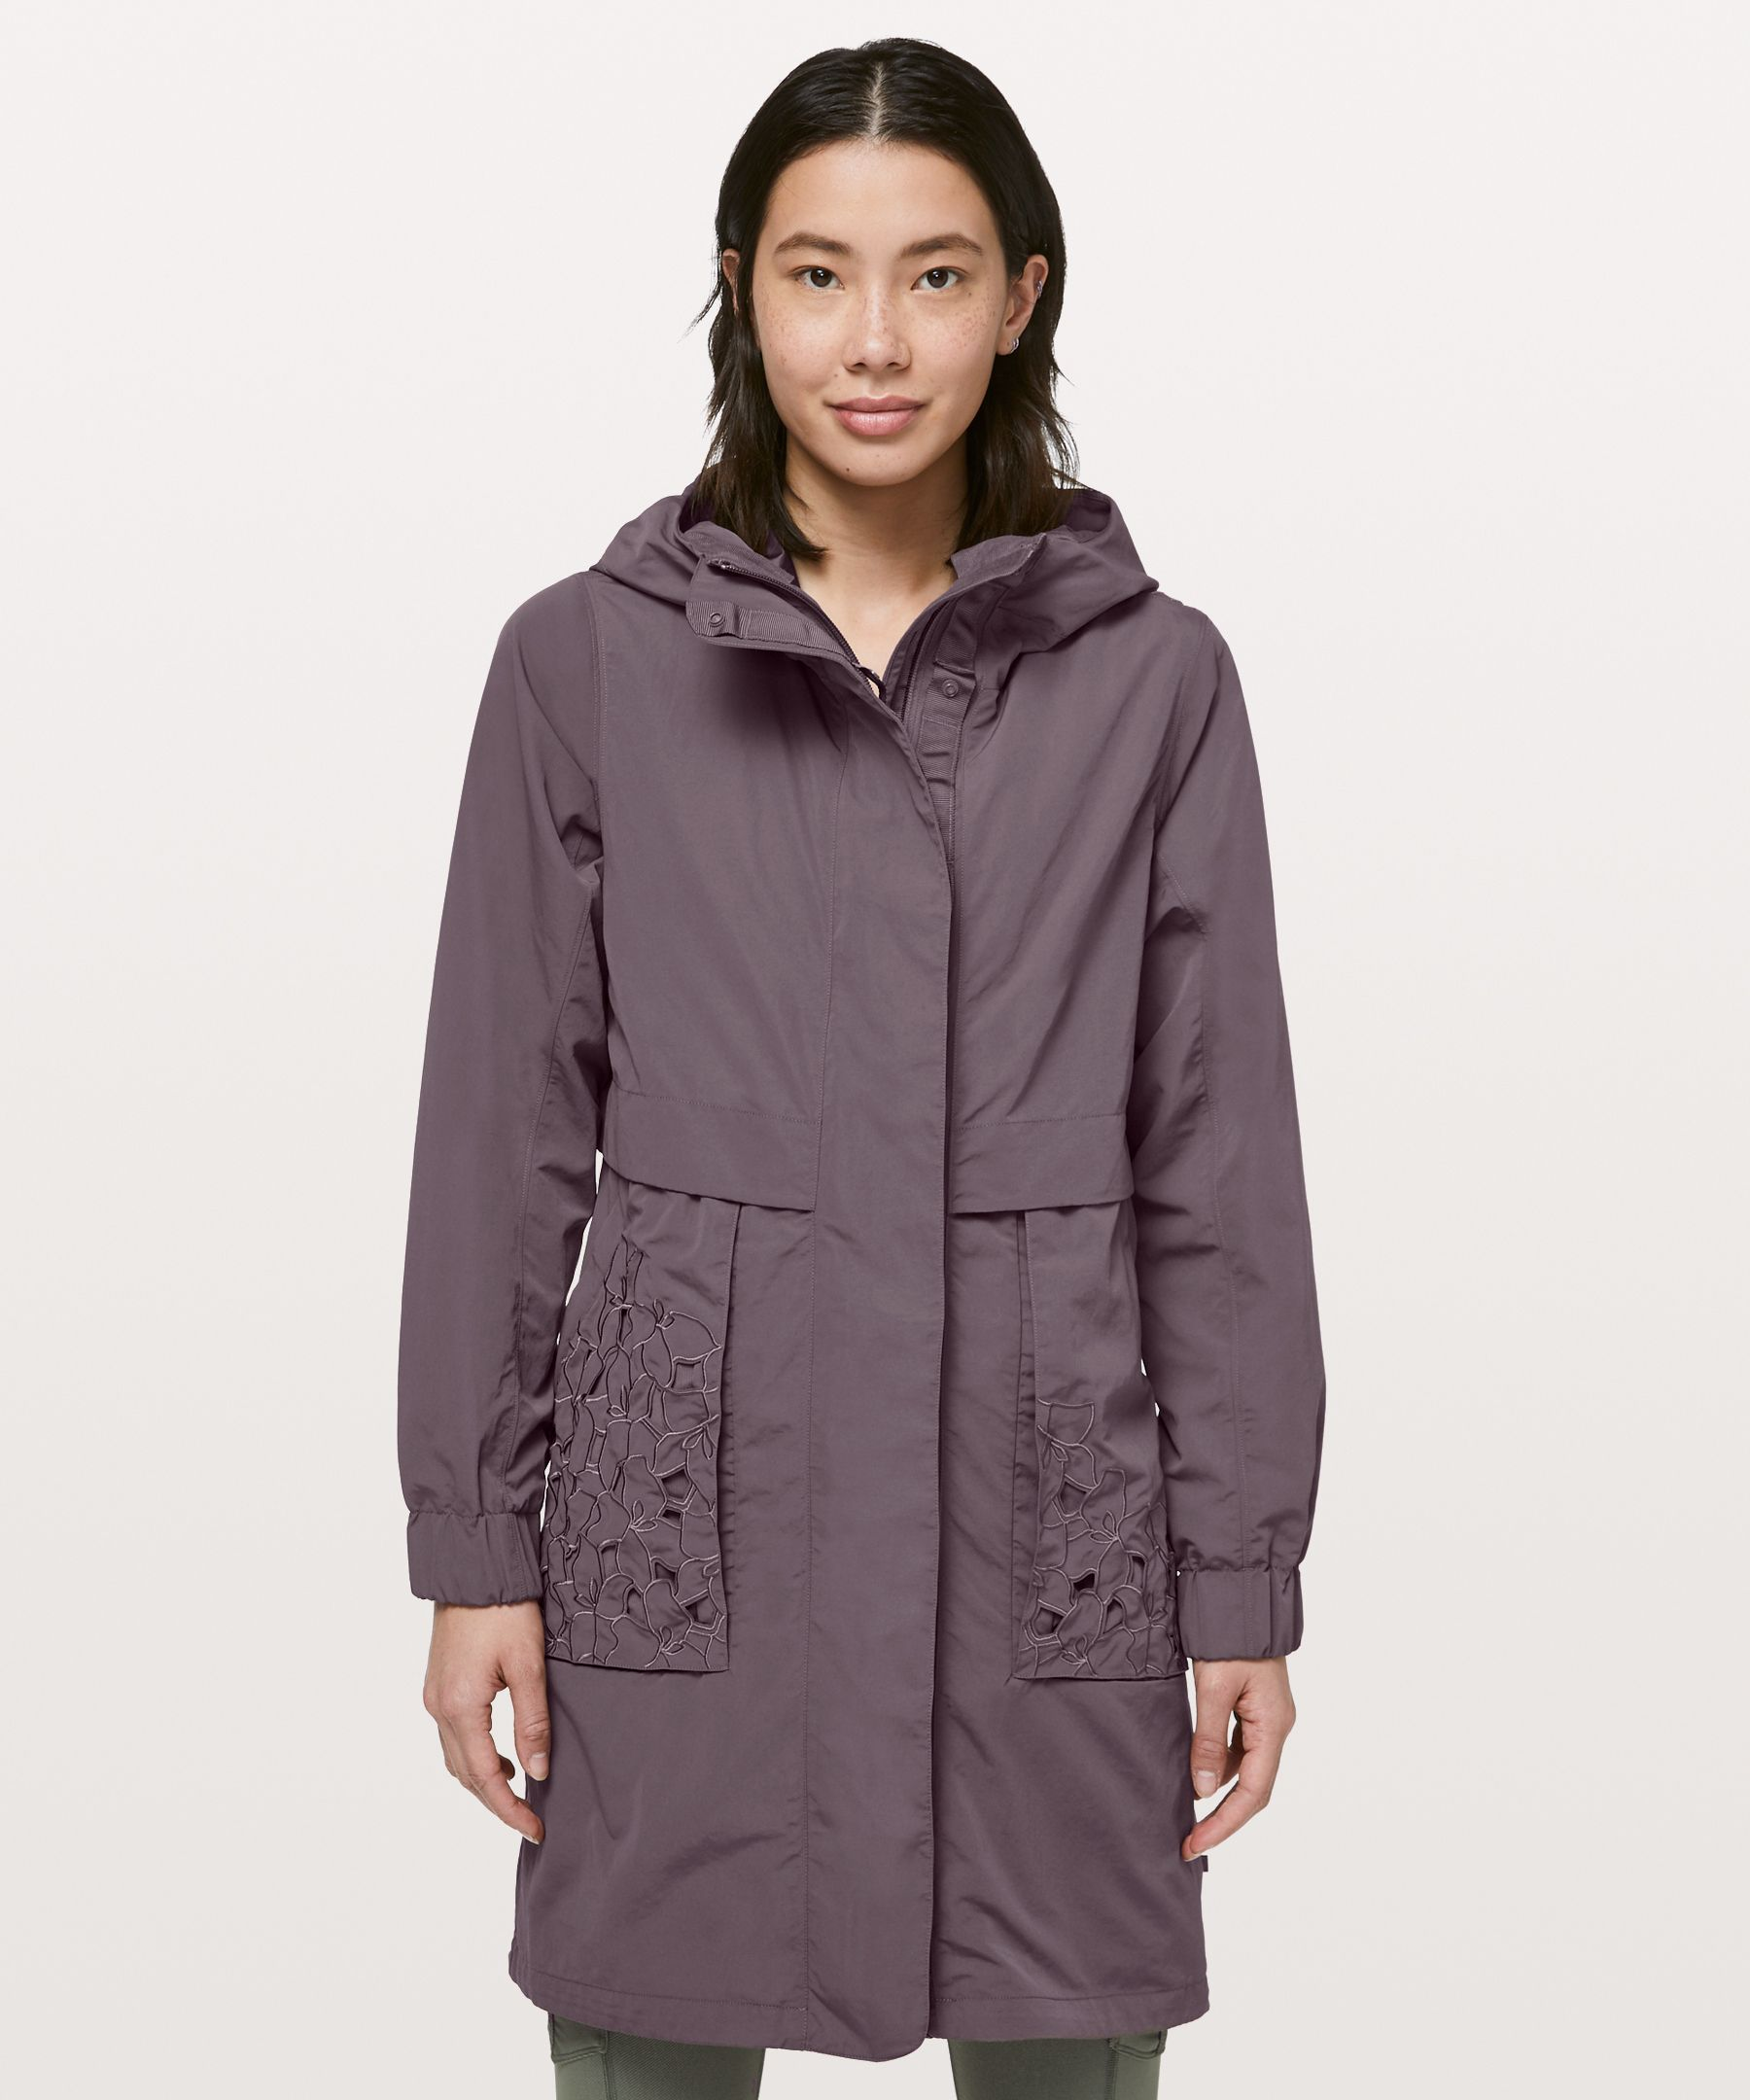 Lululemon Graced With Lace Long Jacket In Antique Bark